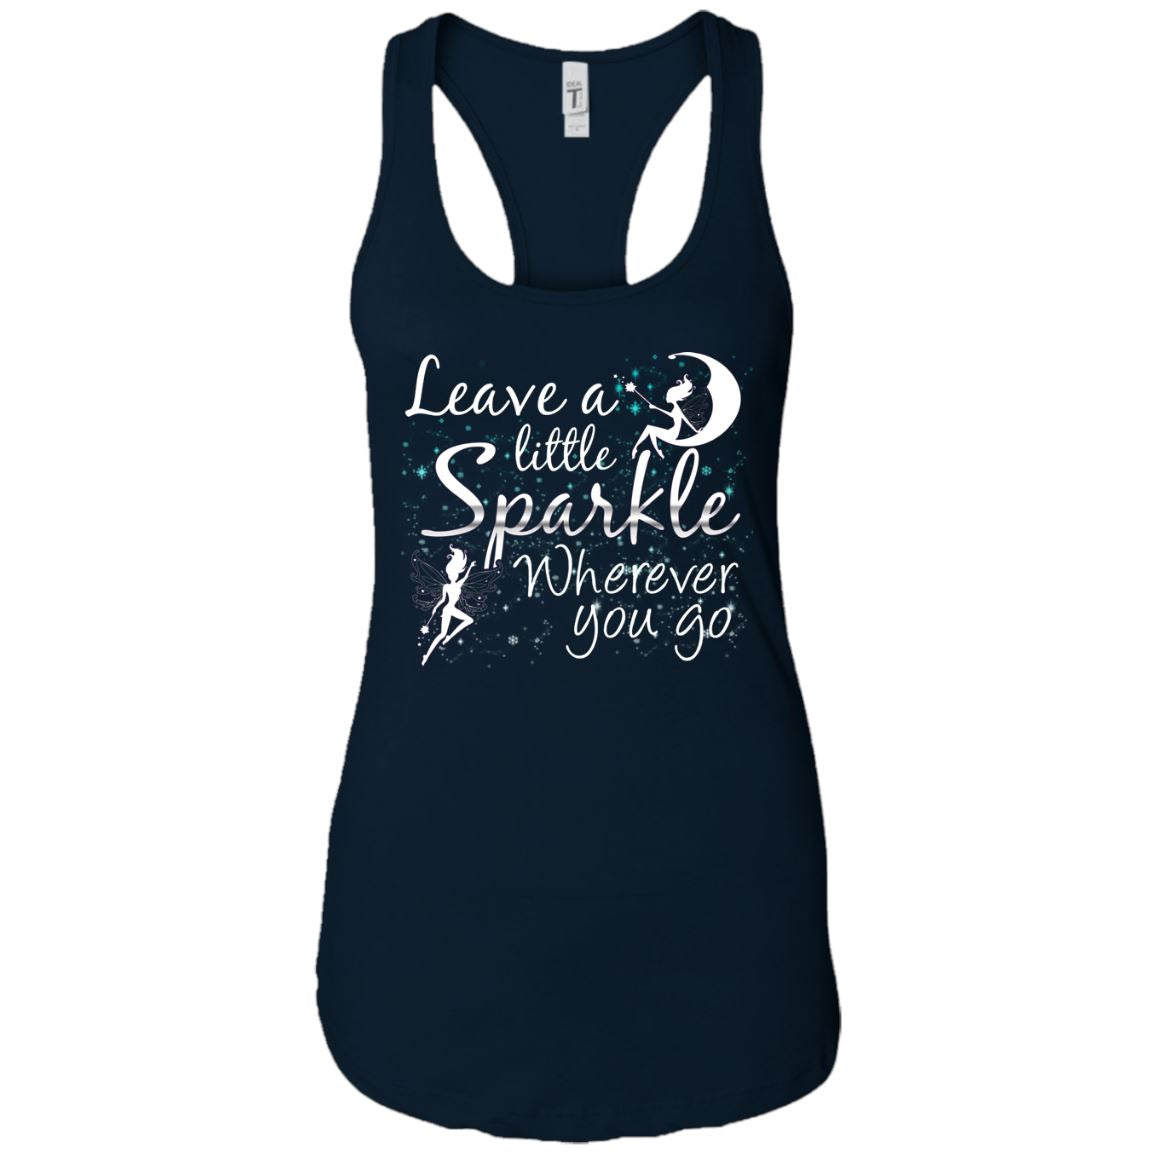 Leave A Little Sparkle Women's Racerback Tank T-Shirts Midnight Navy X-Small